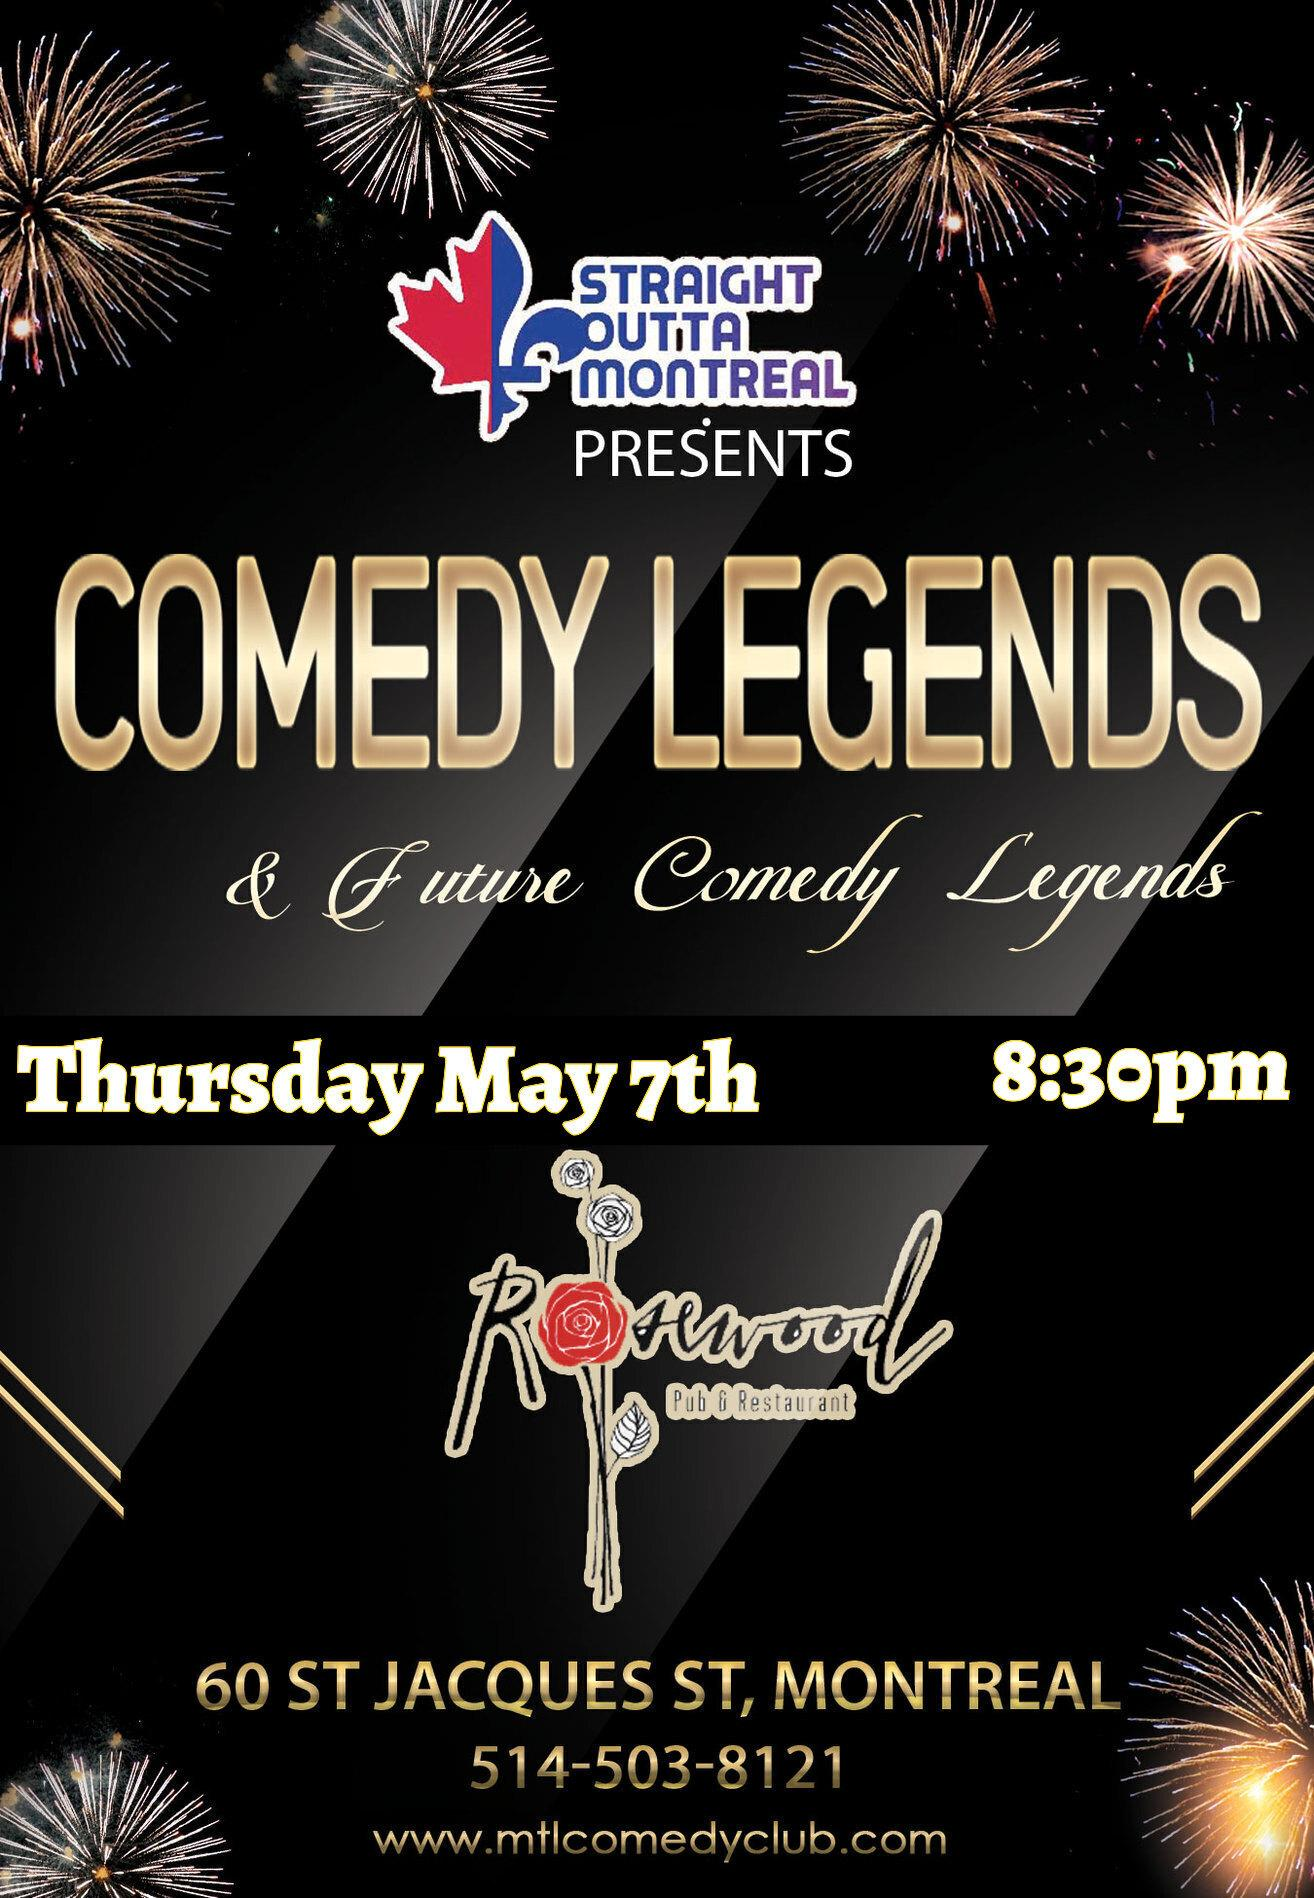 Comedy legends ( Stand Up Comedy )